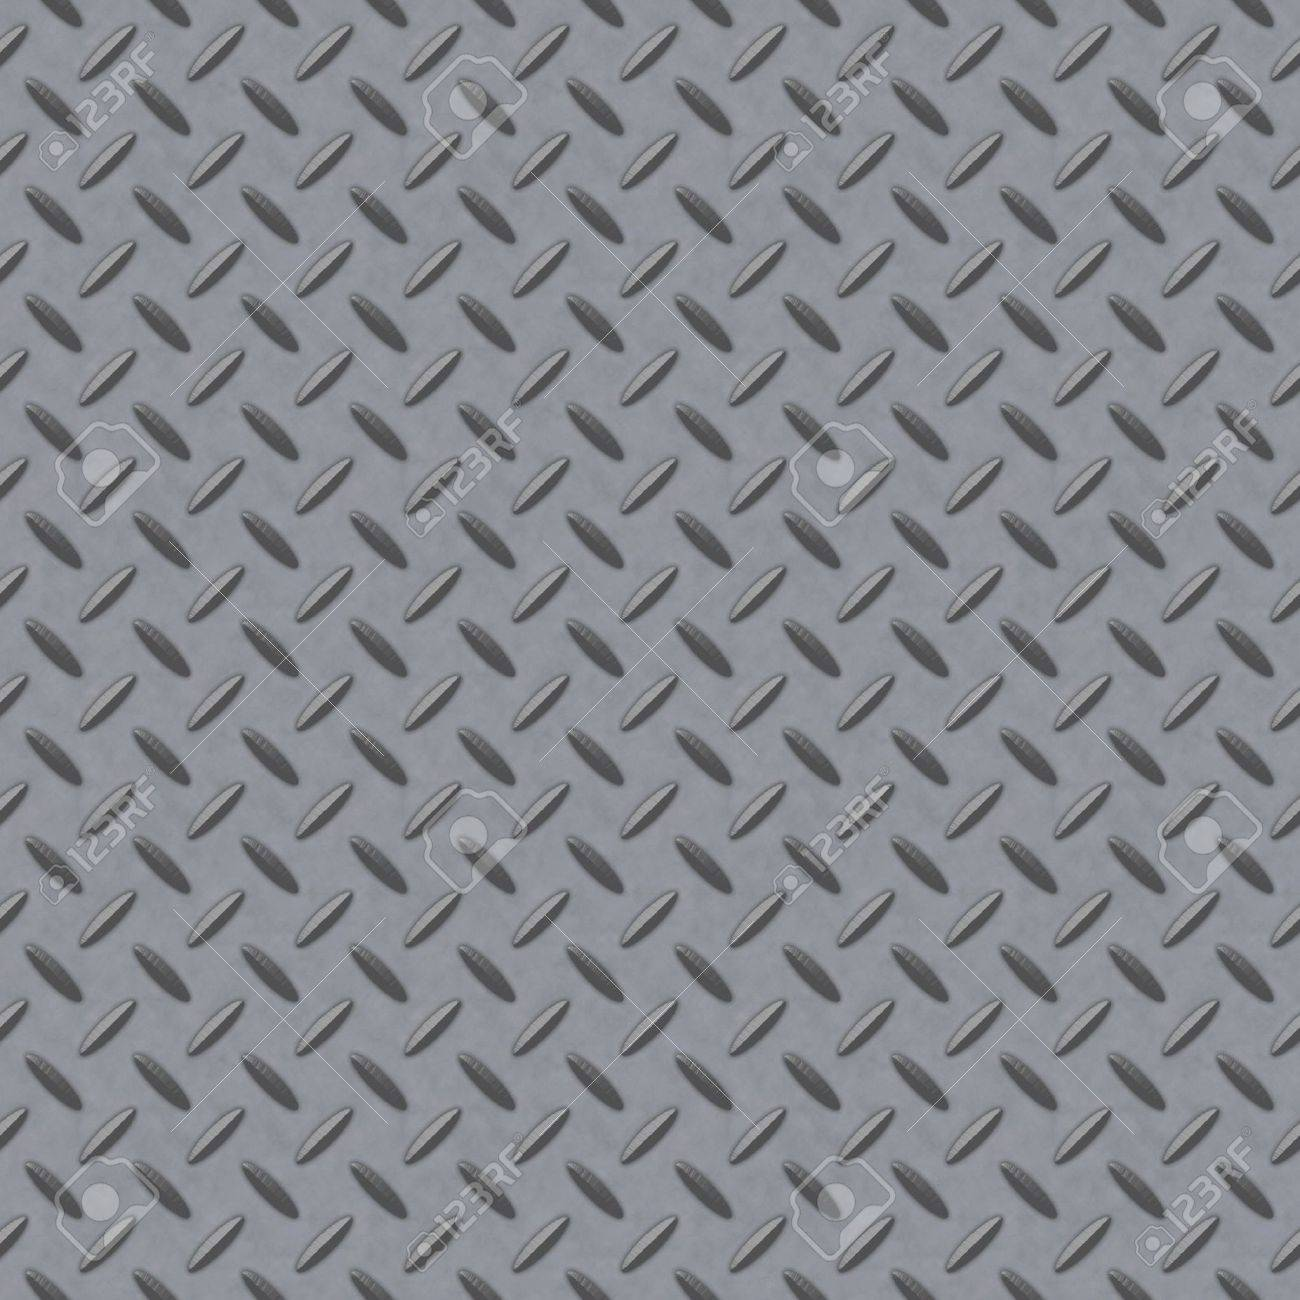 Checkerplate Metal Background Which Will Tile Seamlessly Stock Photo